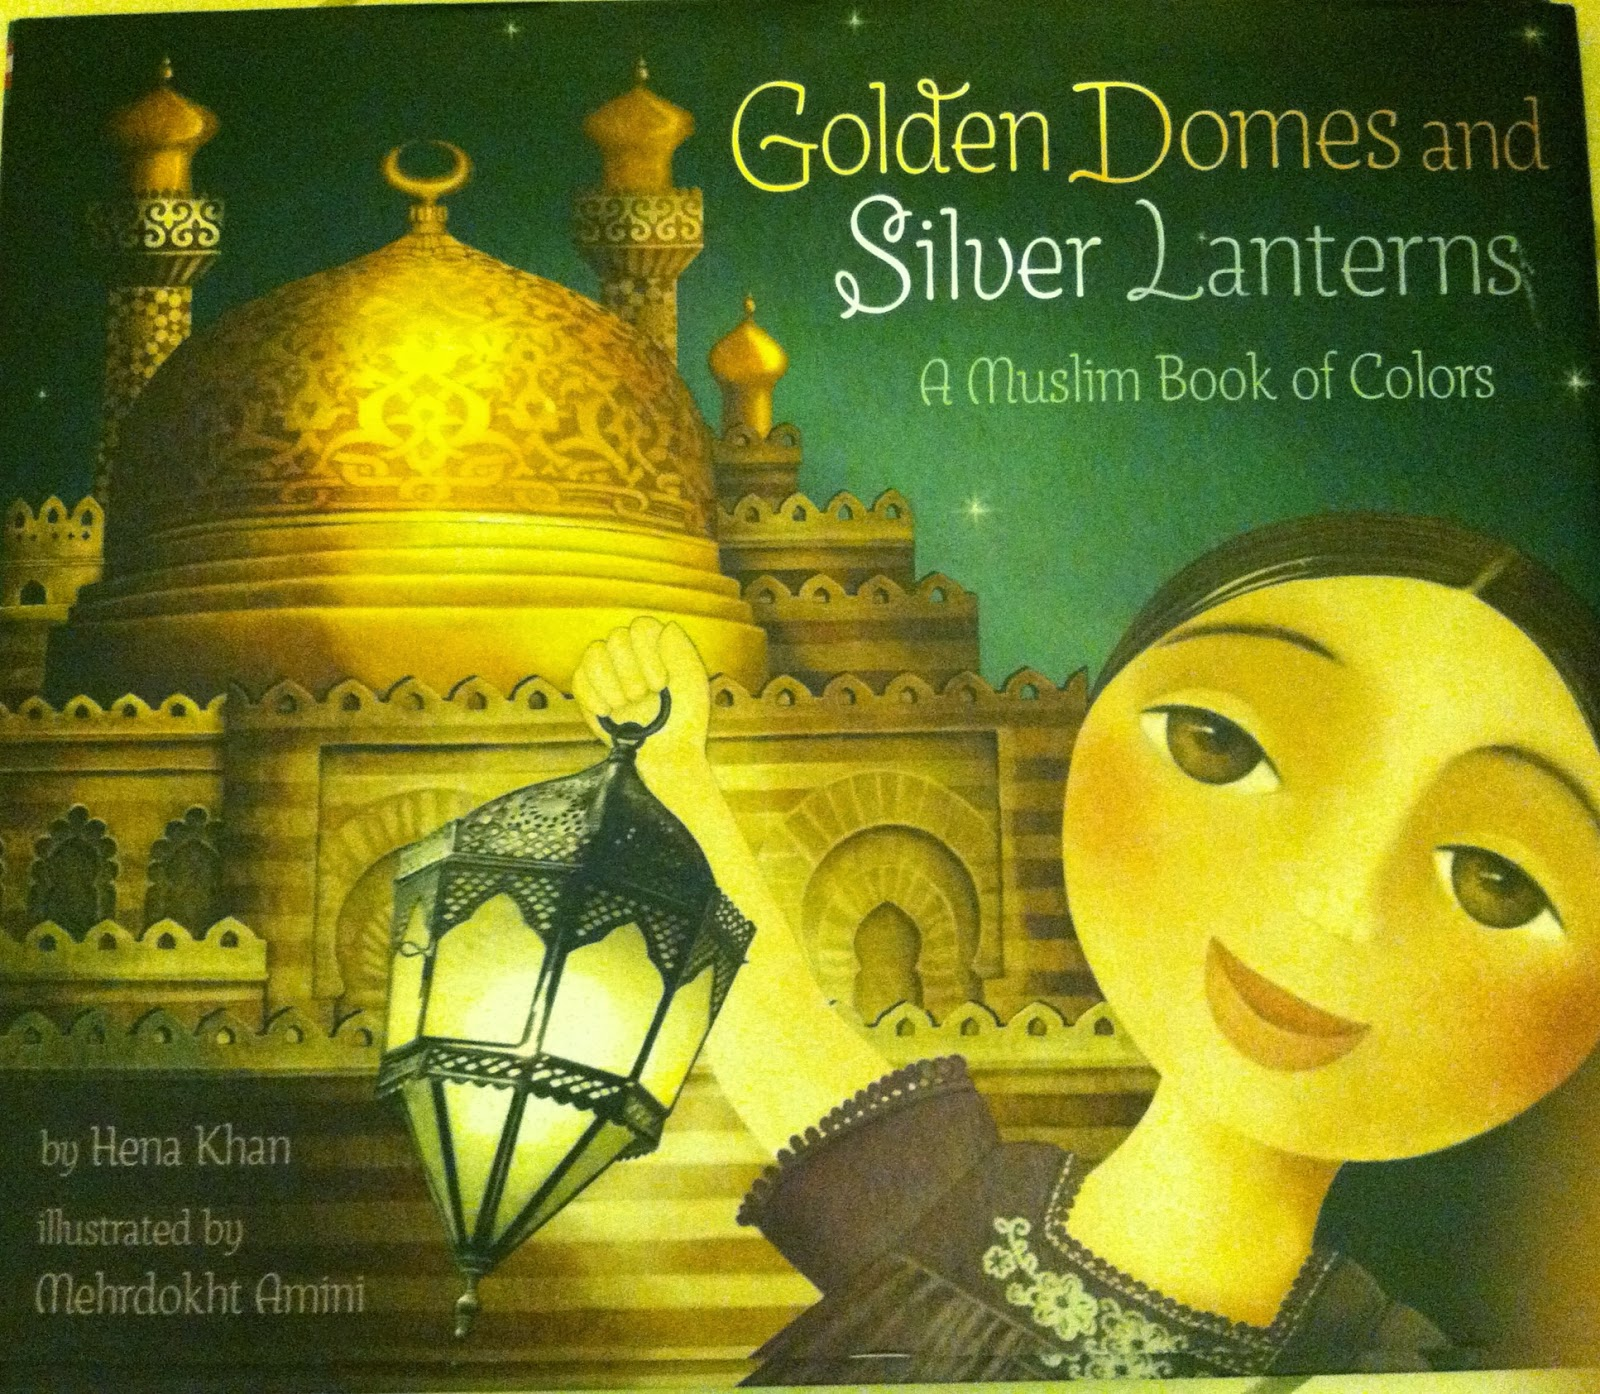 Books, Babies, and Bows: A Book Challenge to Golden Domes and Silver ...